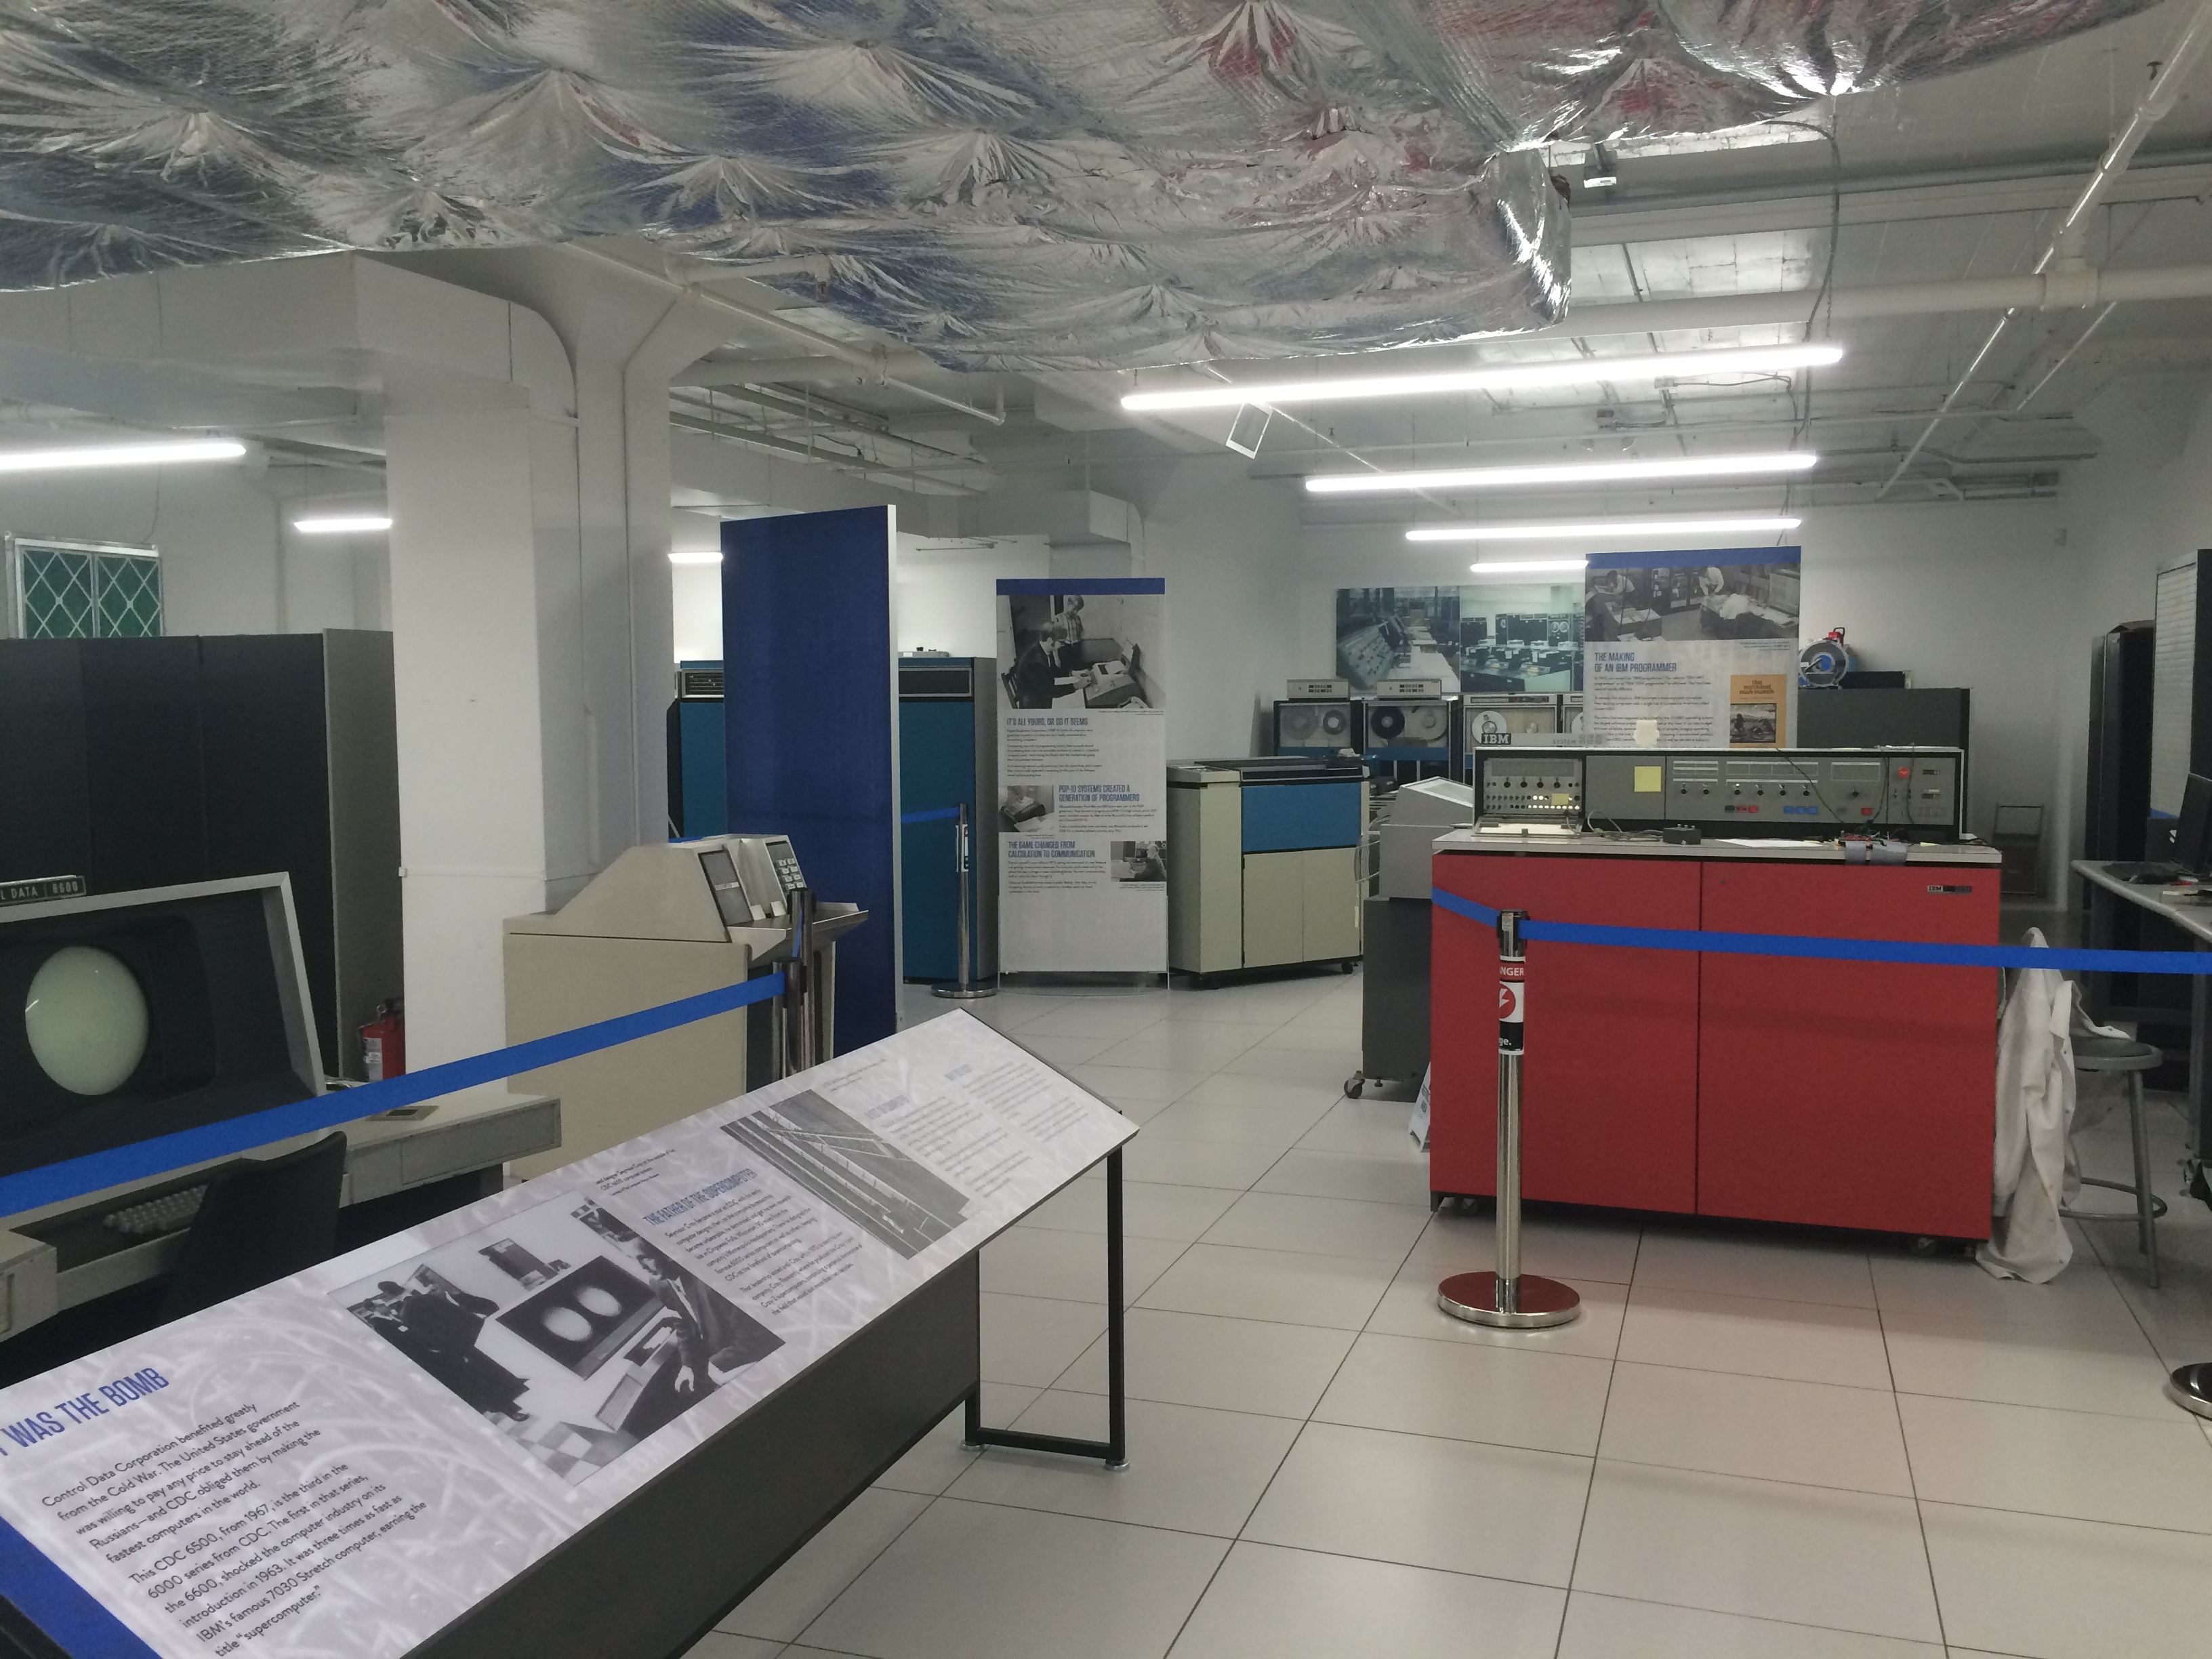 Some larger machines within the museum.